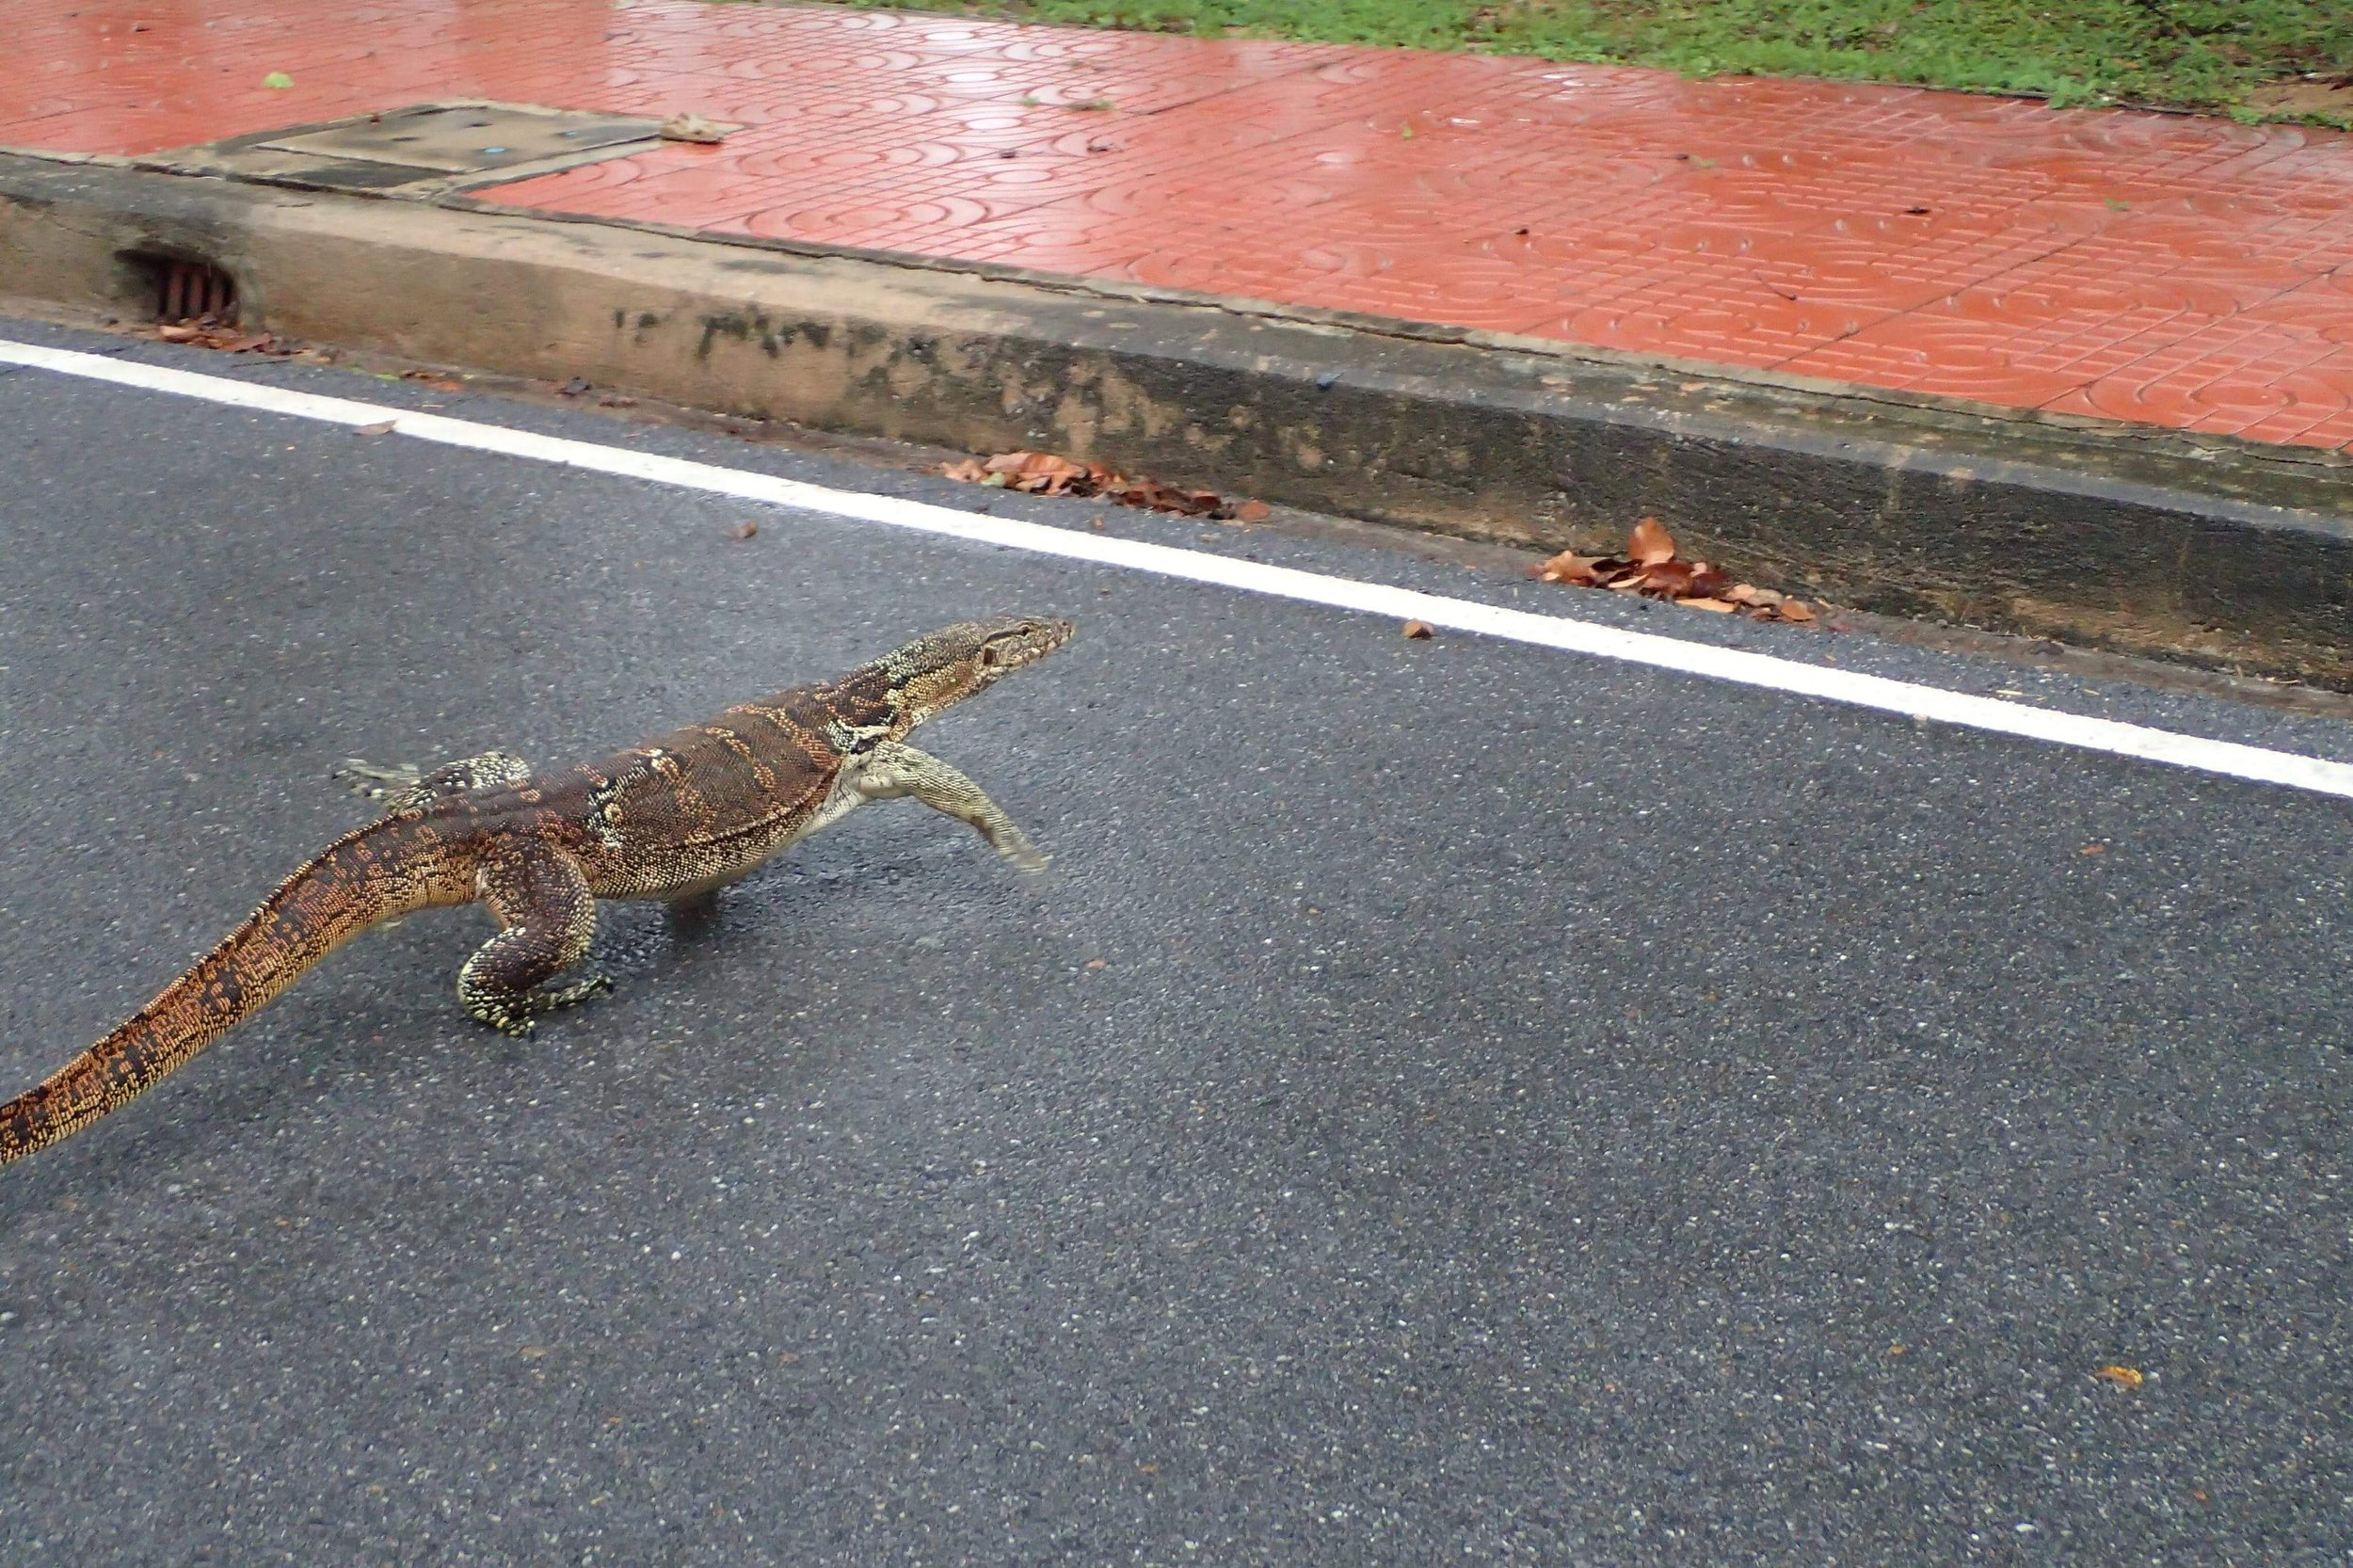 Big monitor lizard. These things are fast and gnarly looking. I wouldn't want to be chased by one.